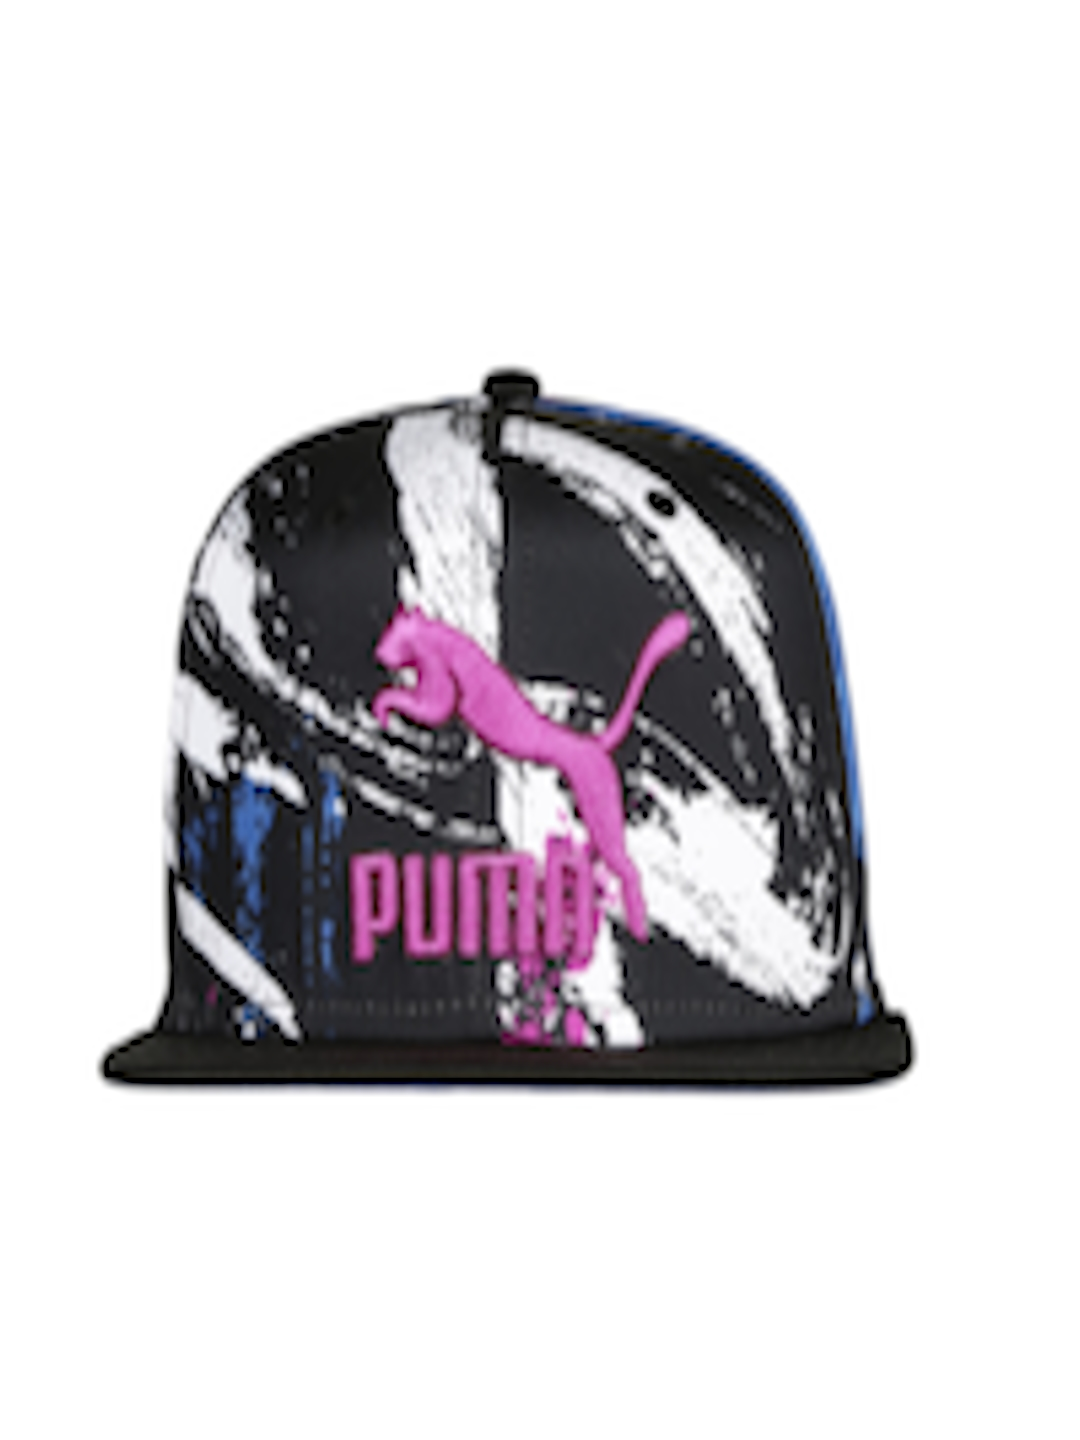 ec3a0a6744c Buy PUMA Unisex Black   White Printed LS ColourBlock SnapBack Cap - Caps  for Unisex 1971152